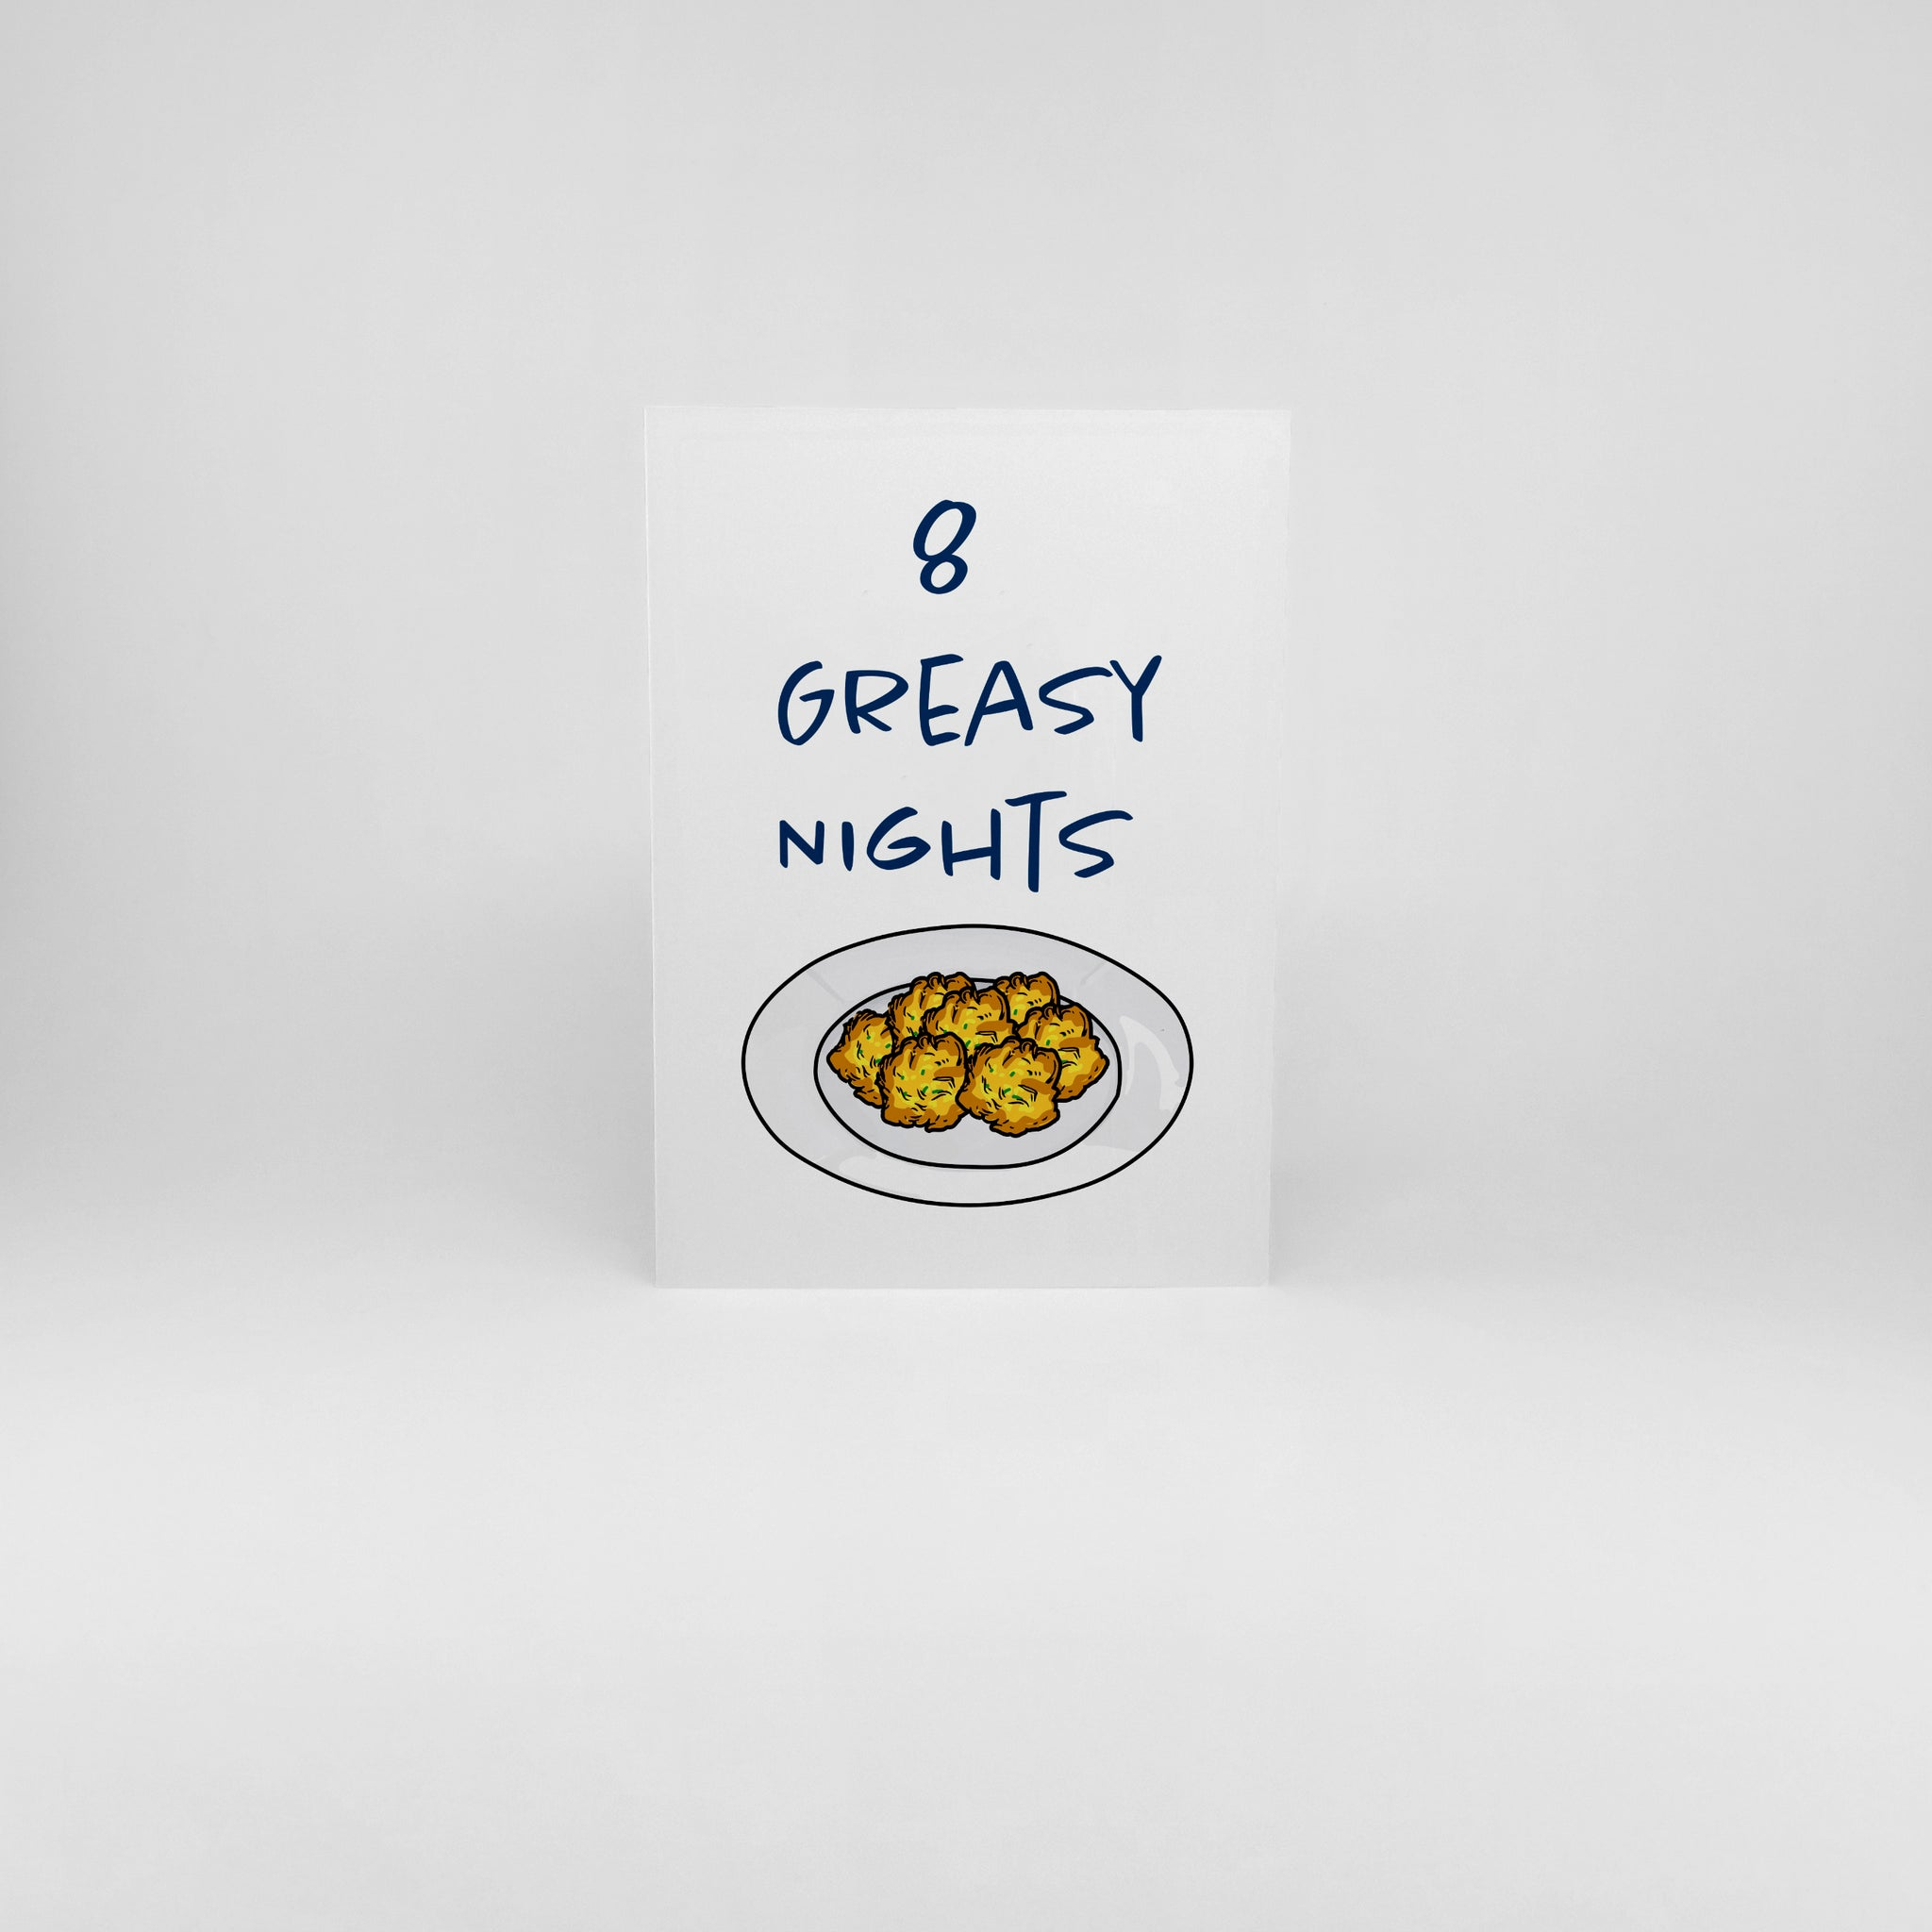 8 Greasy Nights